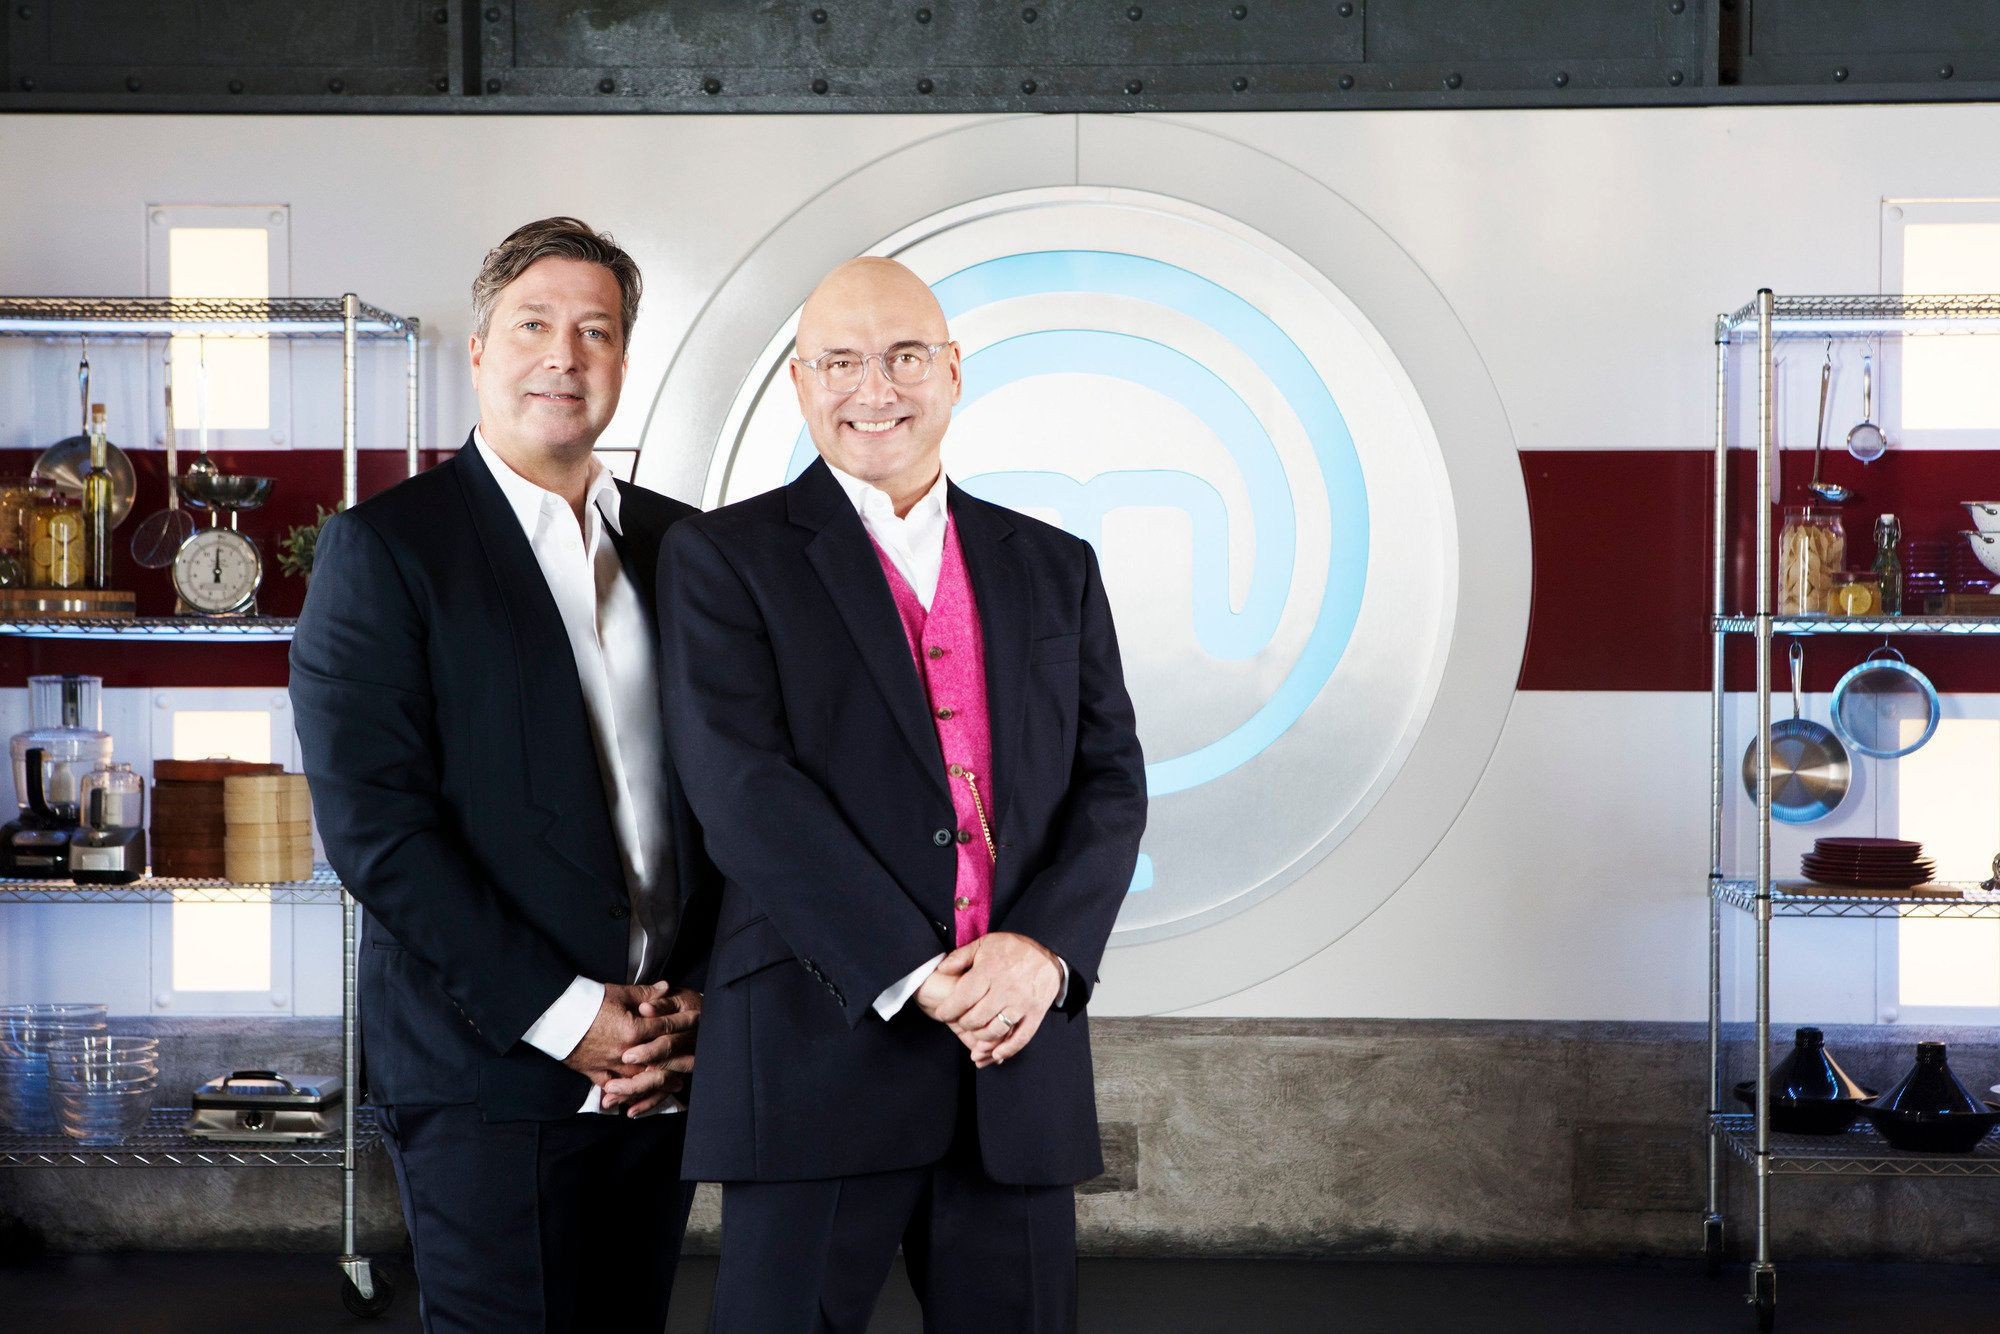 MasterChef Judges Gregg Wallace And John Torode Say They'd Quit BBC For Right